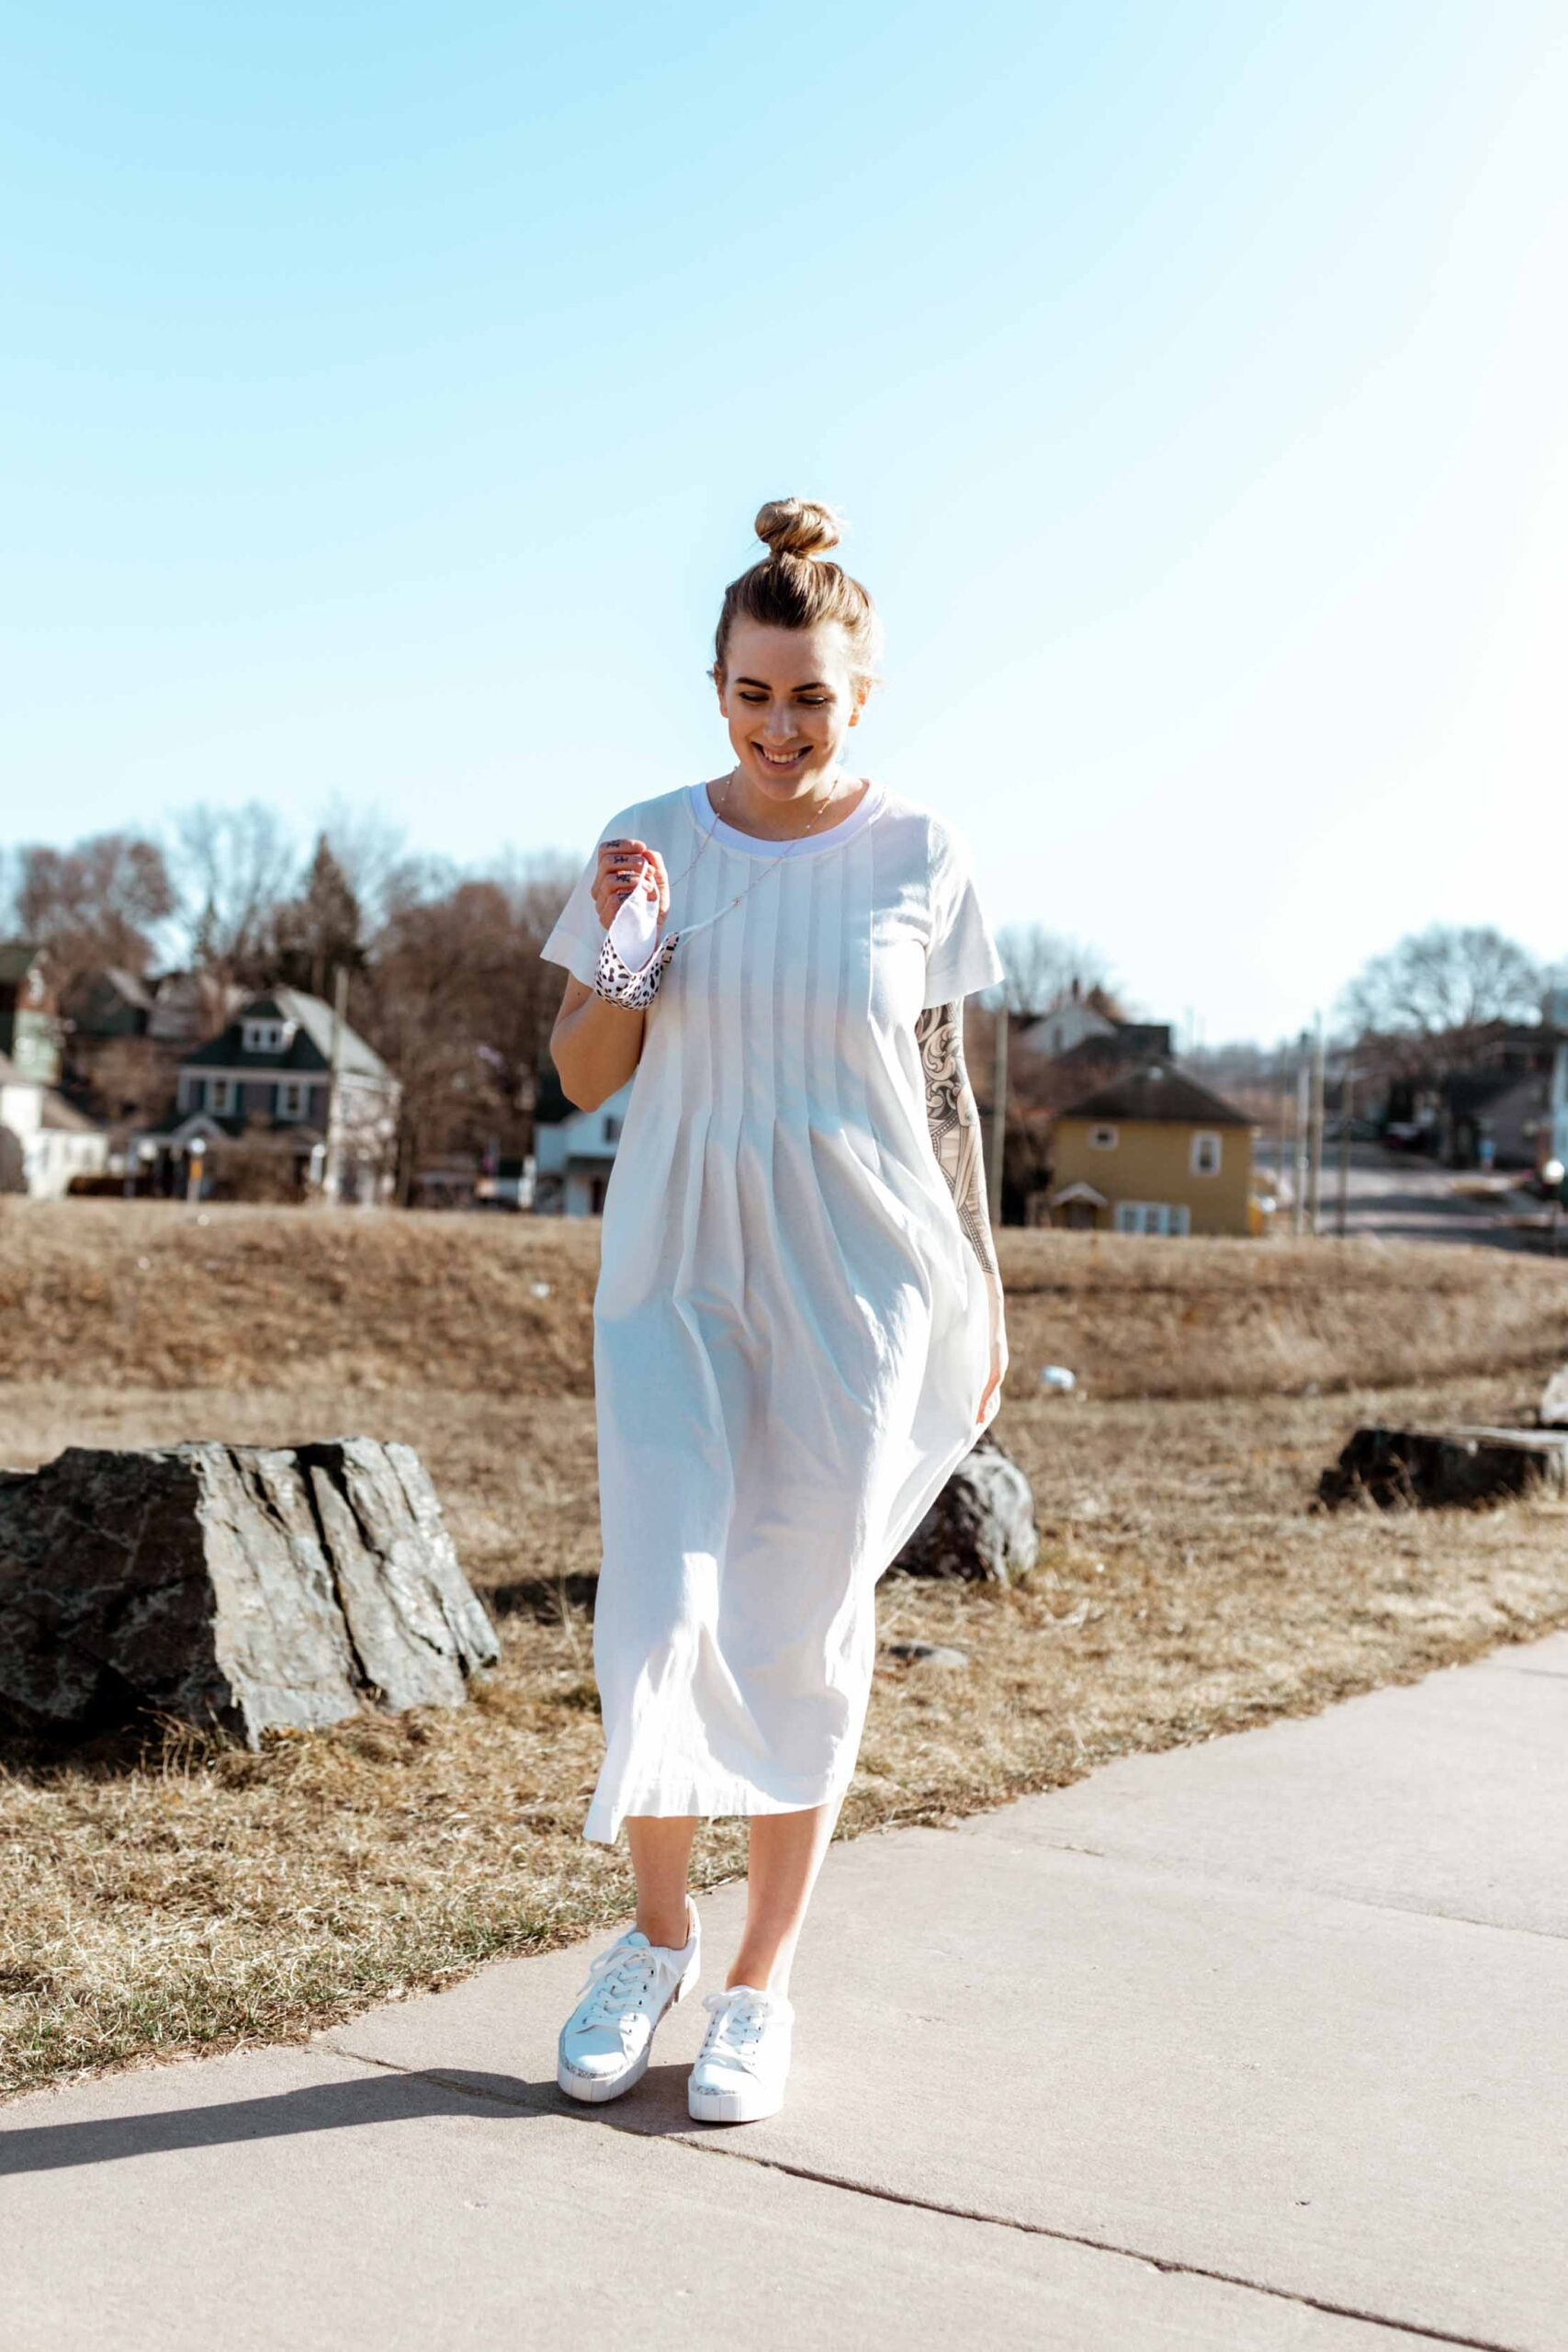 I heart those dressy-yet-casual combos that look both put together + effortless. A vibrant slip dress w/ a t-shirt, a light sweater & some comfy kicks...just the kind of wardrobe vibes we need.